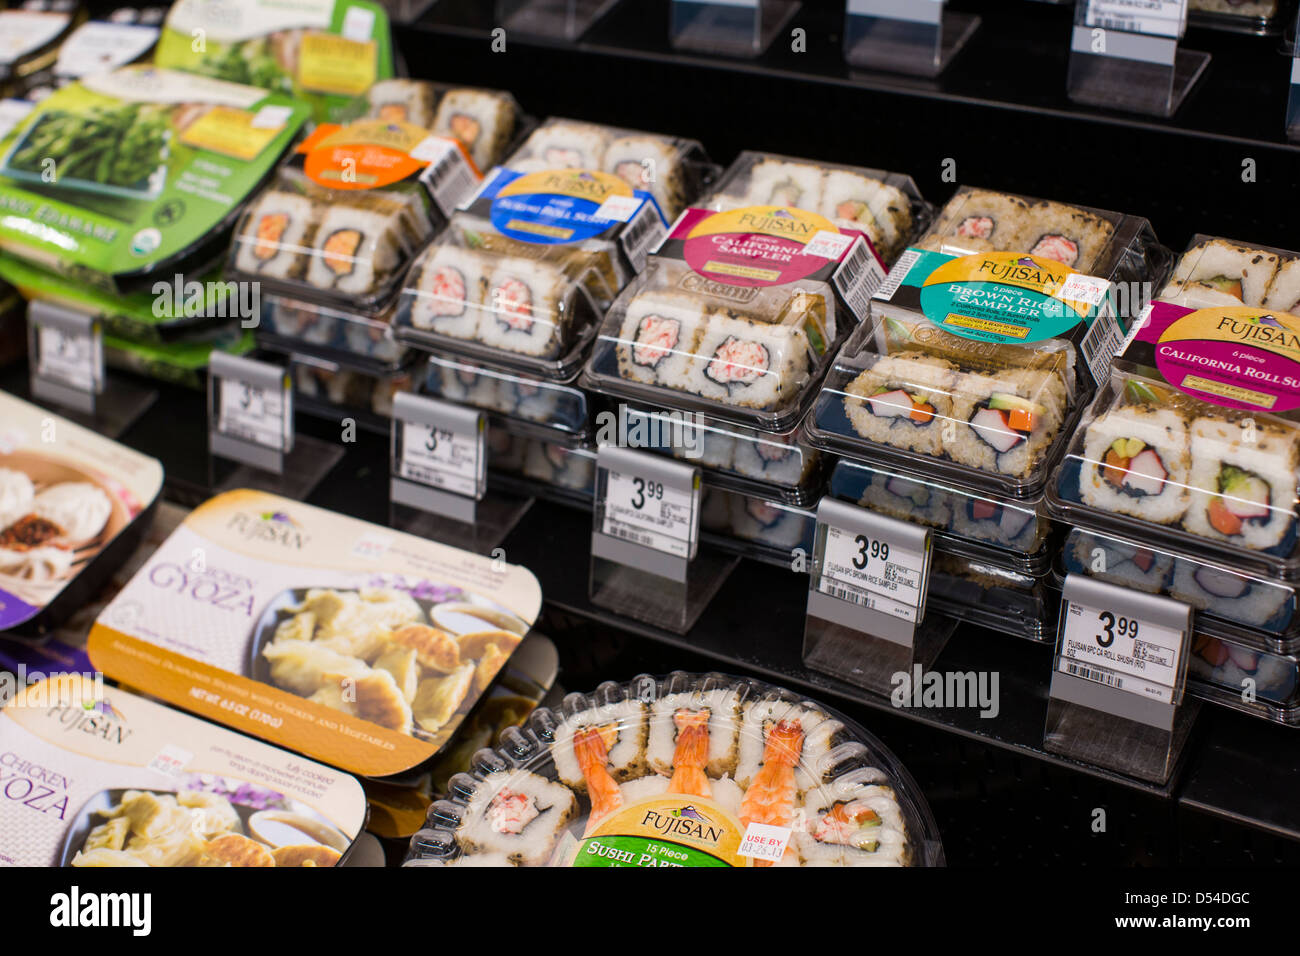 sushi shop stock photos sushi shop stock images alamy pre made sushi on display at a walgreens flagship store stock image